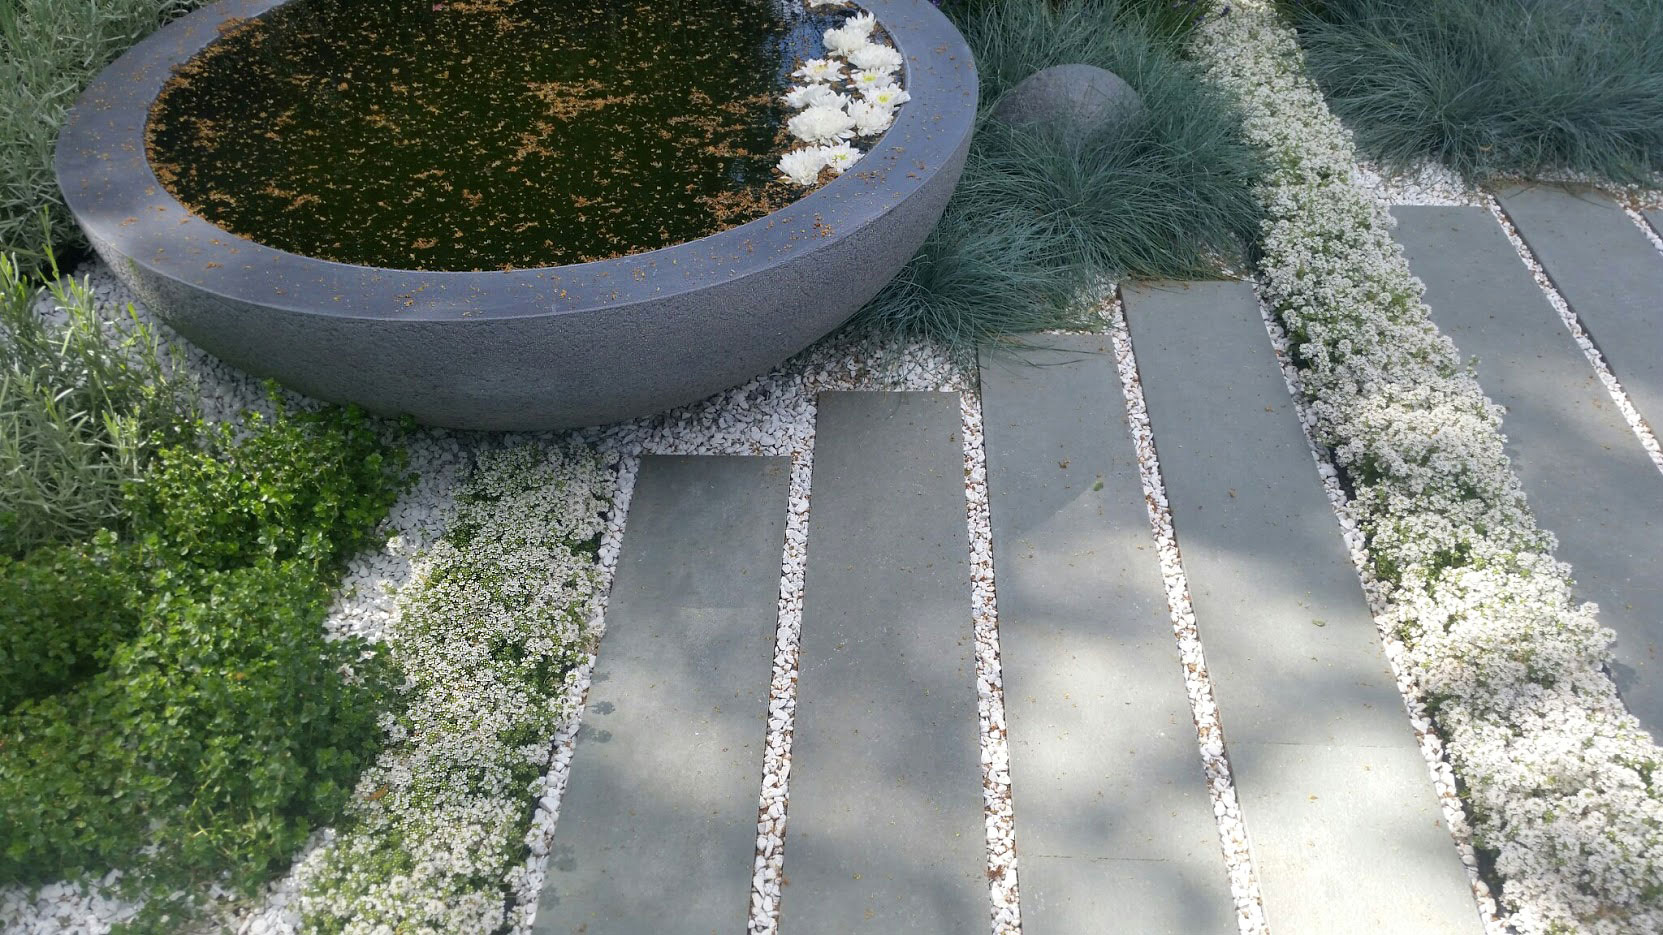 Detail of planter and paving in Rae Wilkinson's RHS Hampton Court Show Garden. Rae Wilkinson Garden and Landscape Design - Garden Designer Sussex, Surrey, London, South-East England